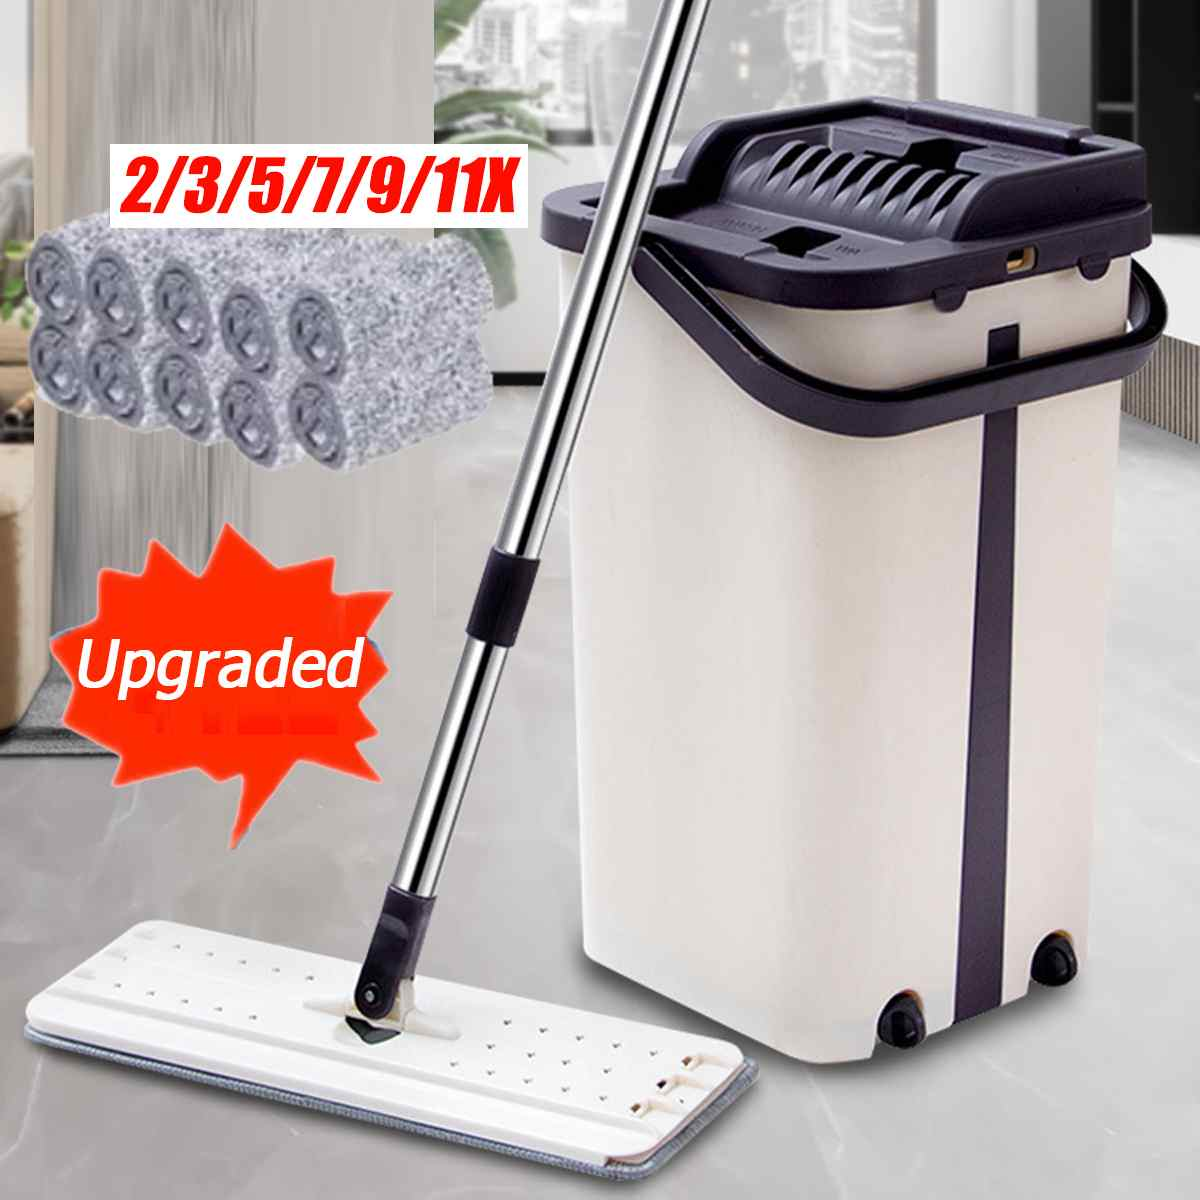 Hand Free Wringing Flat Squeeze Mop And Bucket Magic Automatic Spin Home Kitchen Wooden Floor Lazy Cleaning Mop With Pads